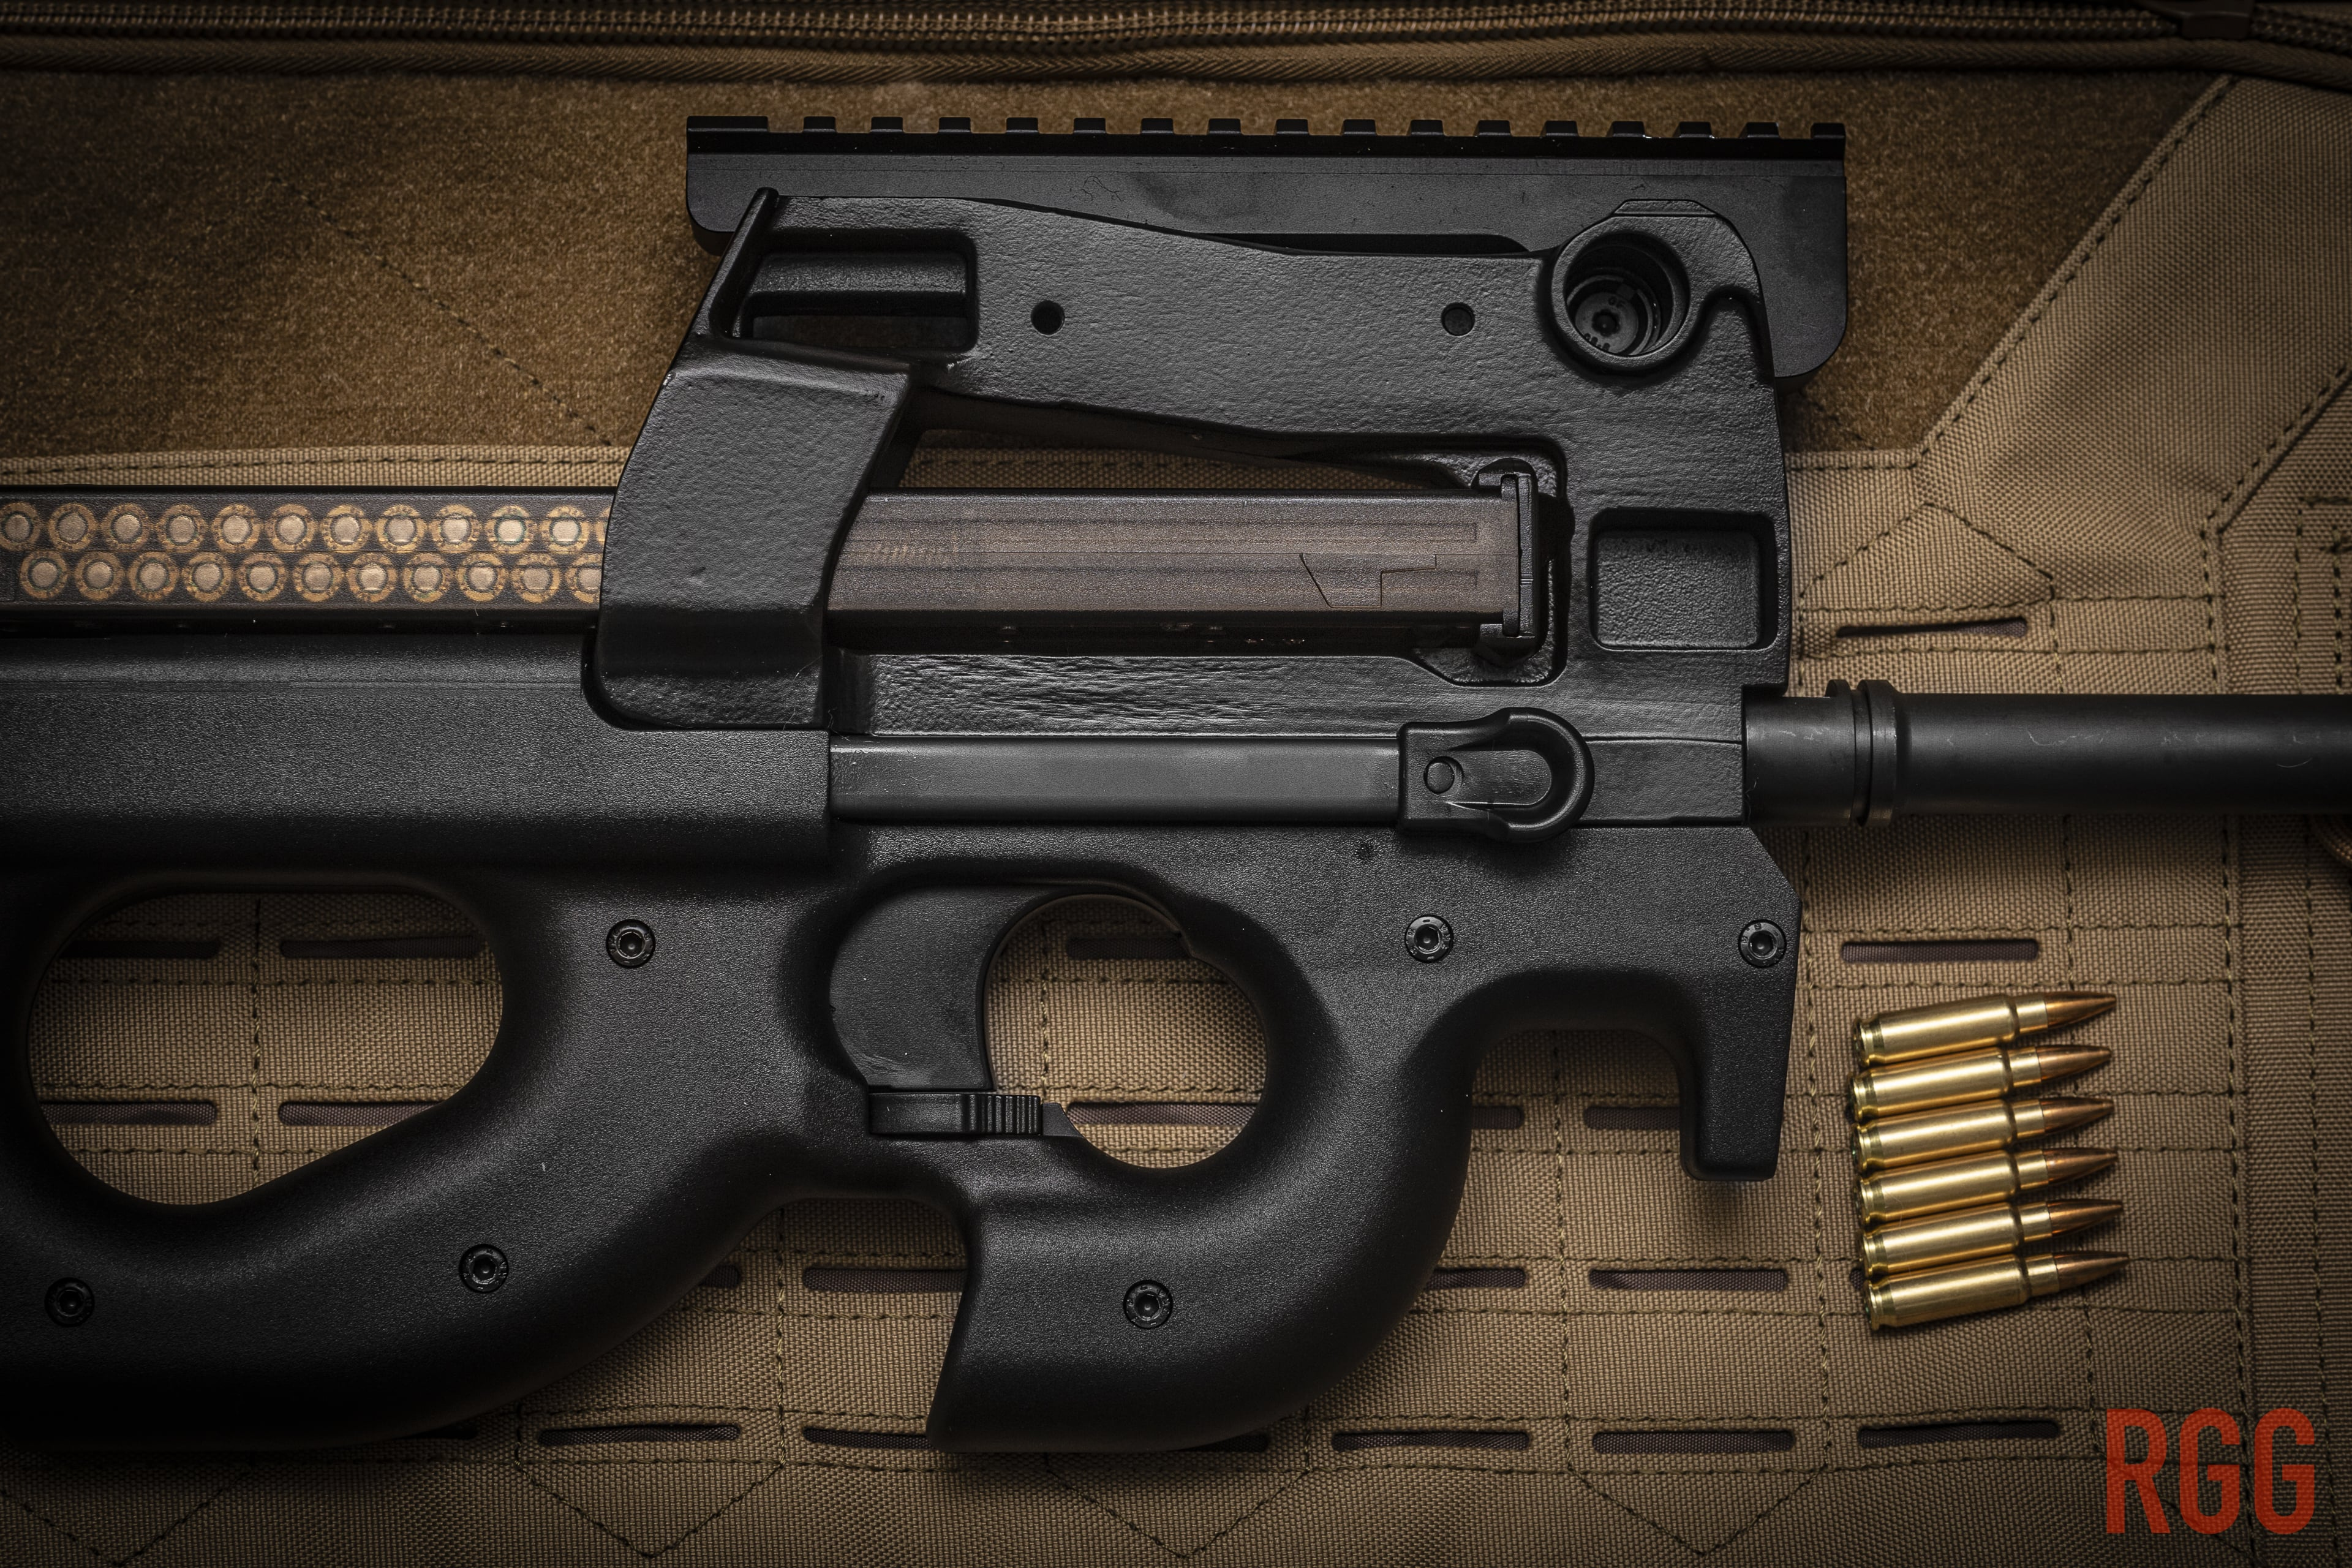 FN Herstal PS90 rifle chambered in 5.7x28mm.